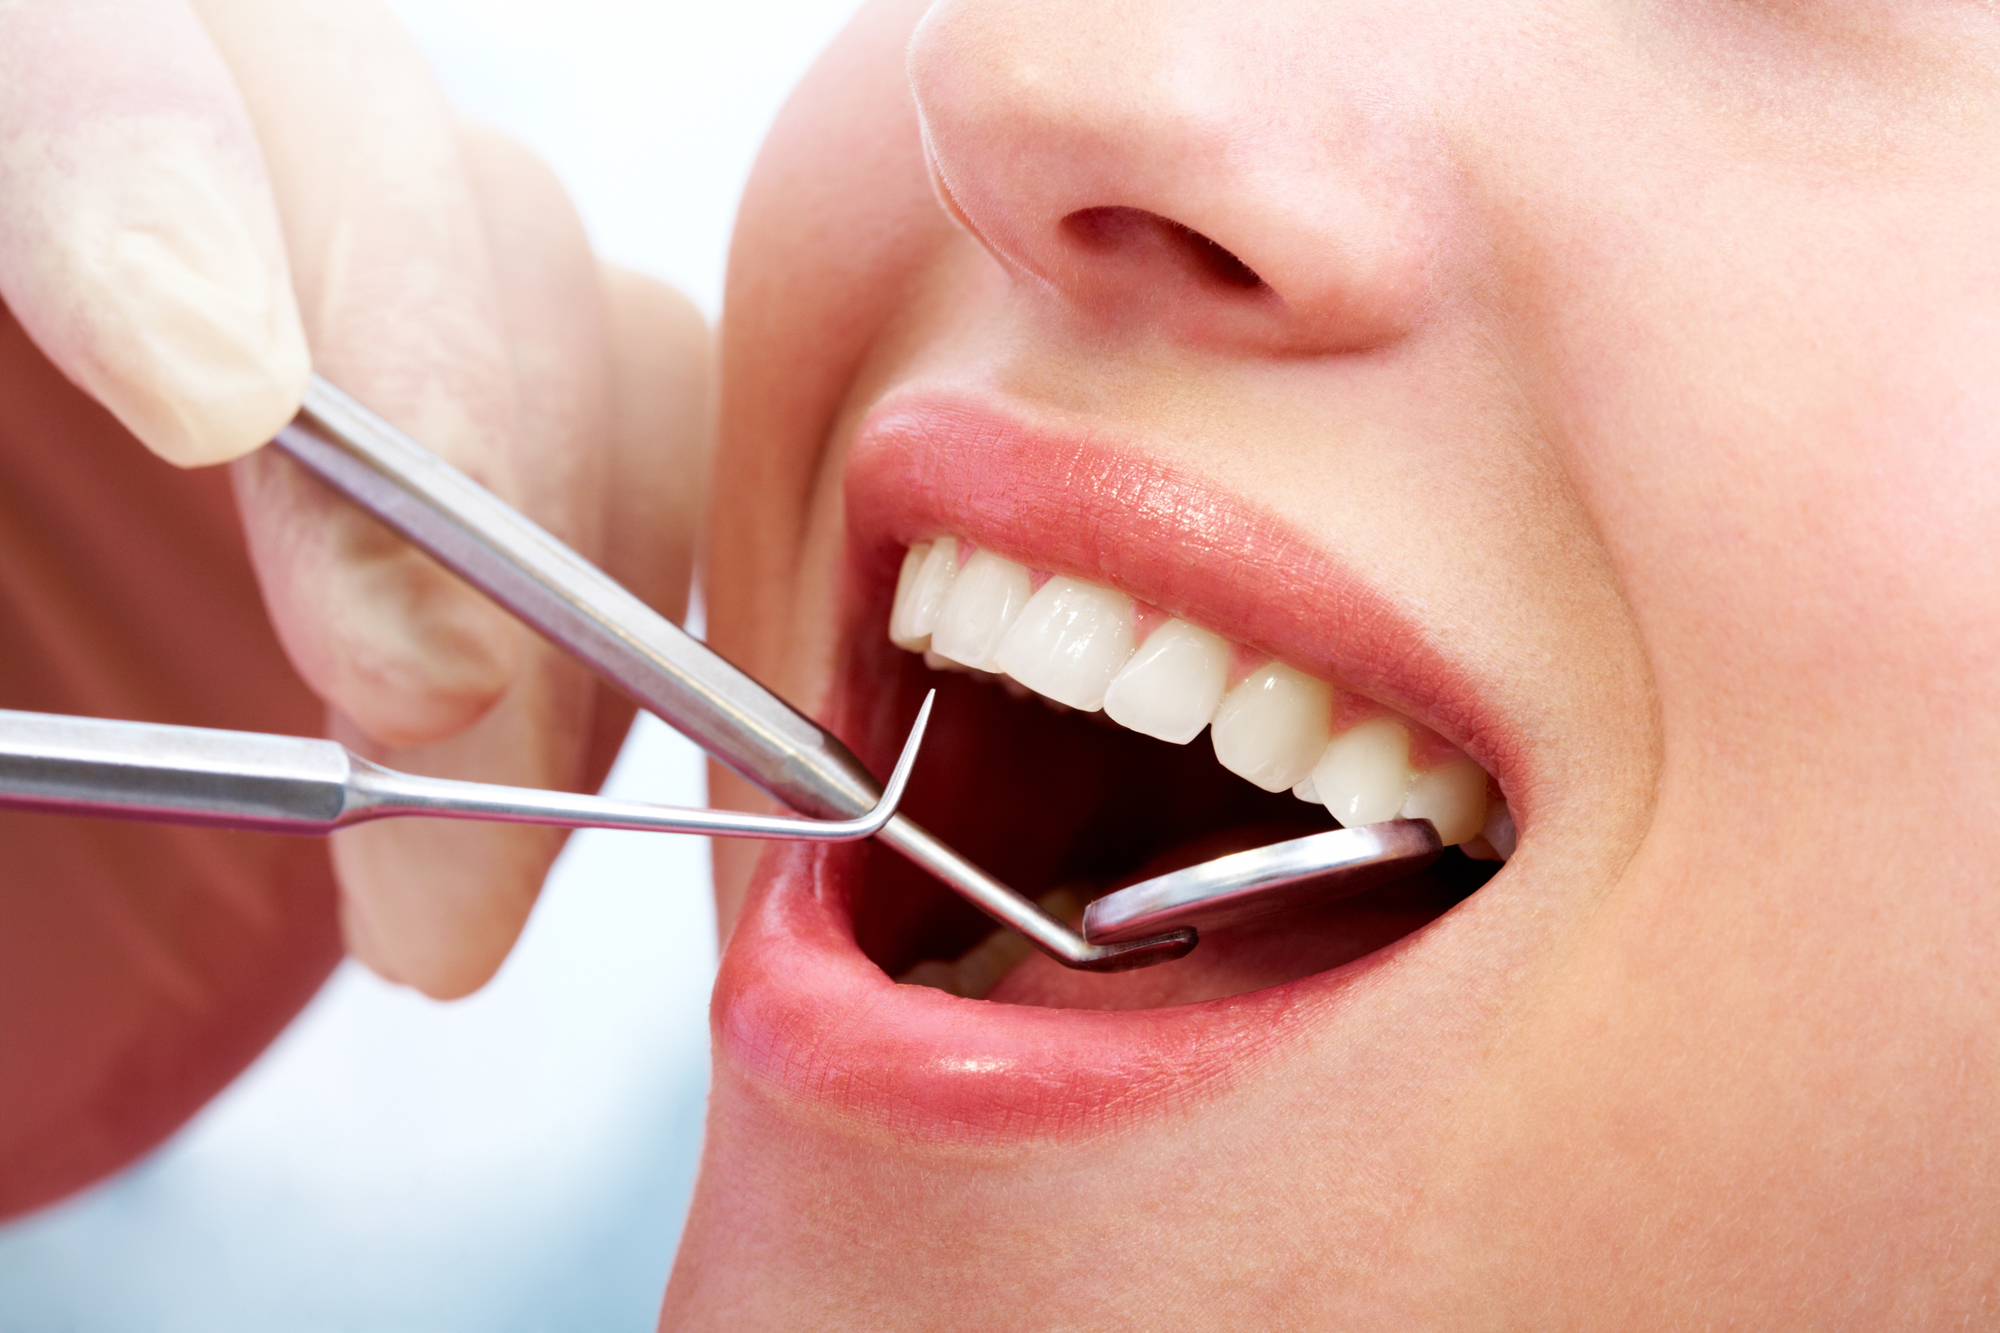 Which dentist in Boca Raton can give me dental fillings?